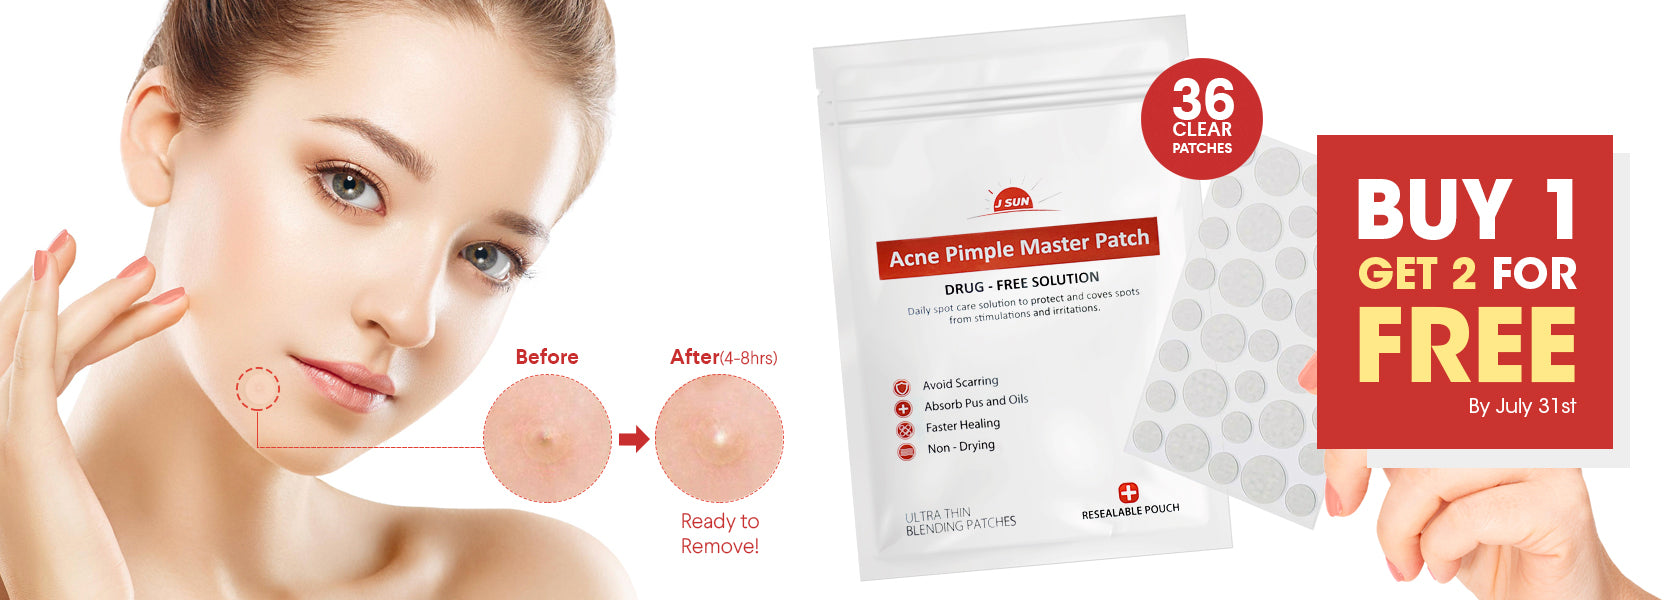 acne patch buy1 get 2 free